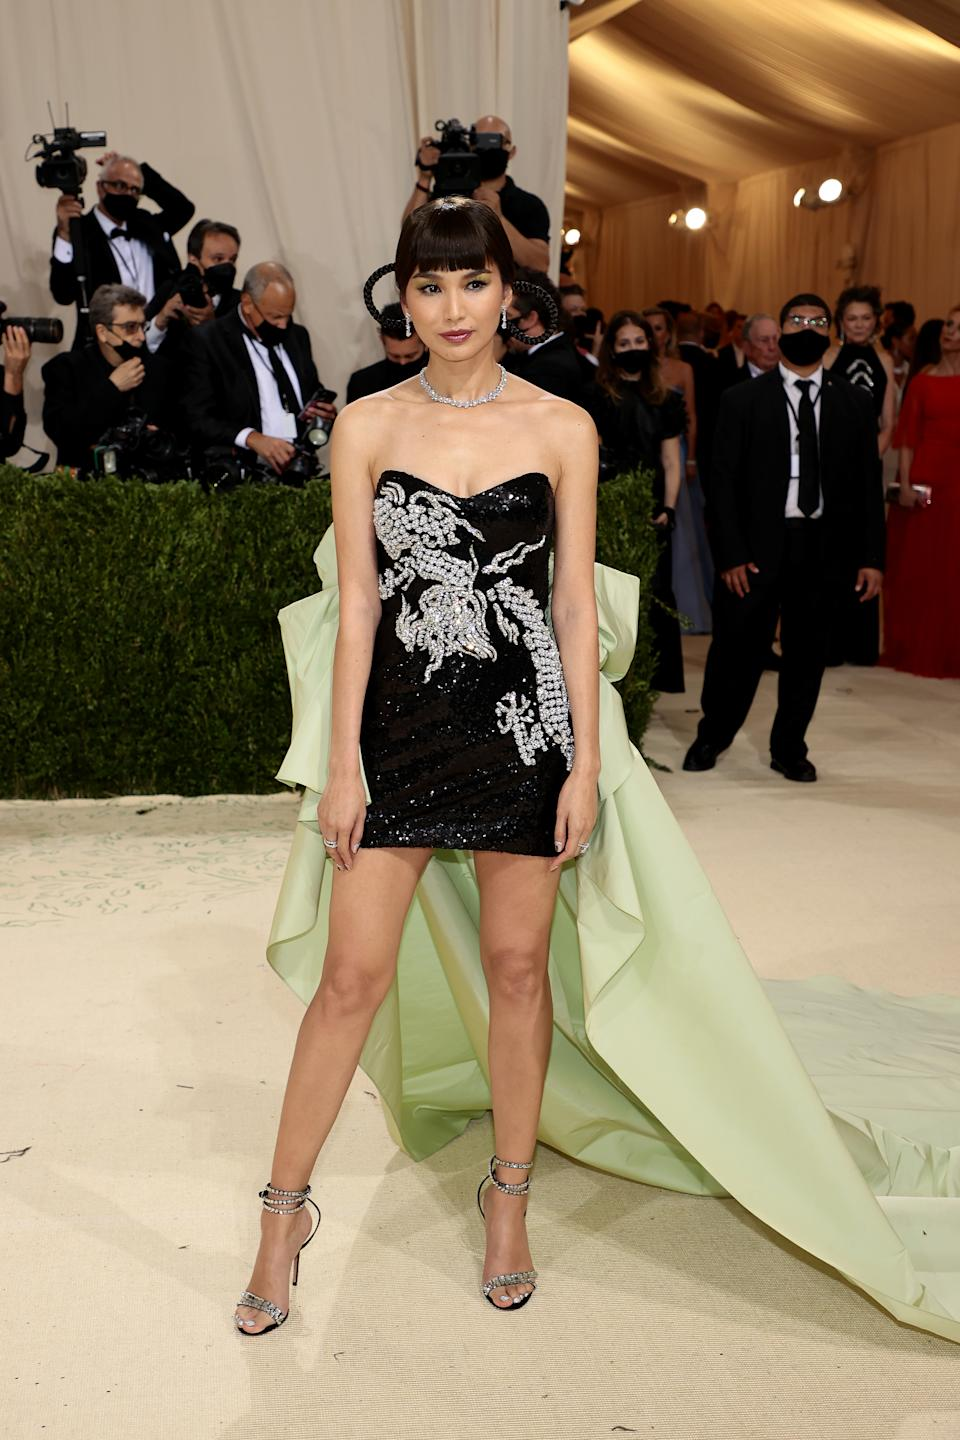 Gemma Chan attends The 2021 Met Gala Celebrating In America: A Lexicon Of Fashion at Metropolitan Museum of Art on September 13, 2021 in New York City. (Getty Images)